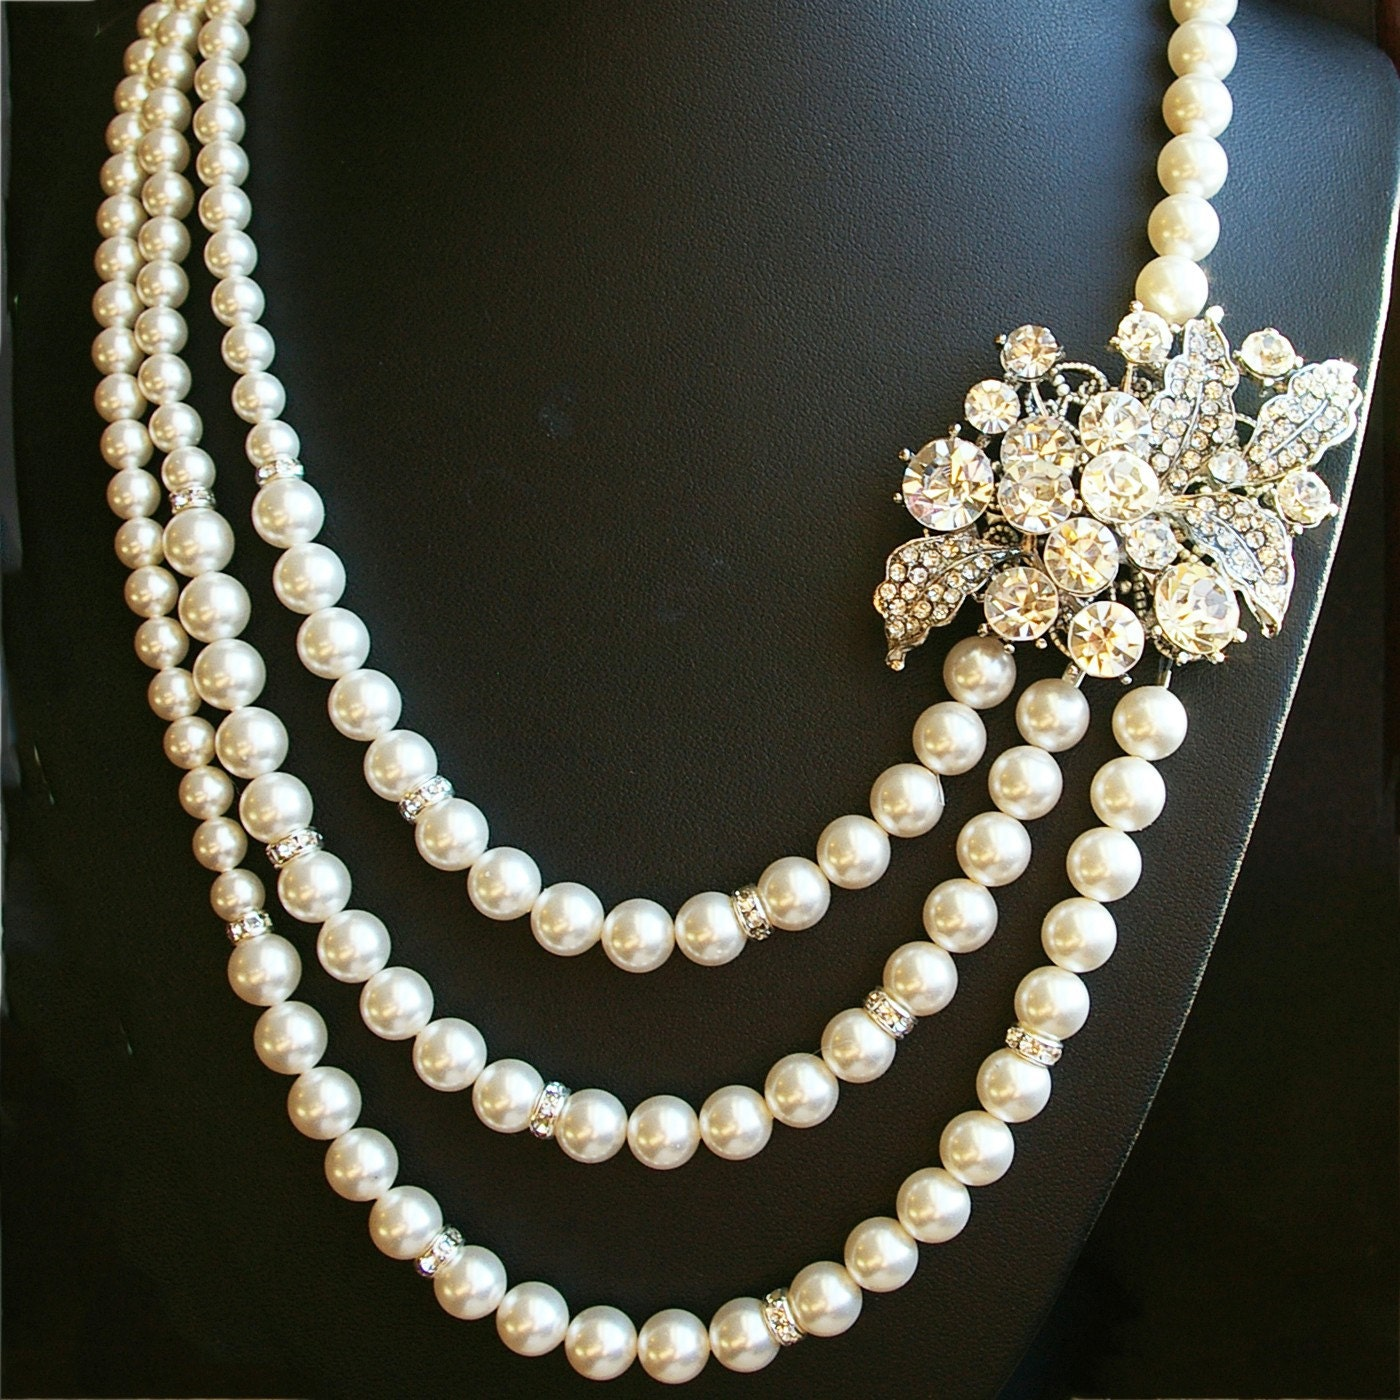 Pearl Necklace Styles: Statement Pearl Bridal Necklace Art Deco Style Rhinestone